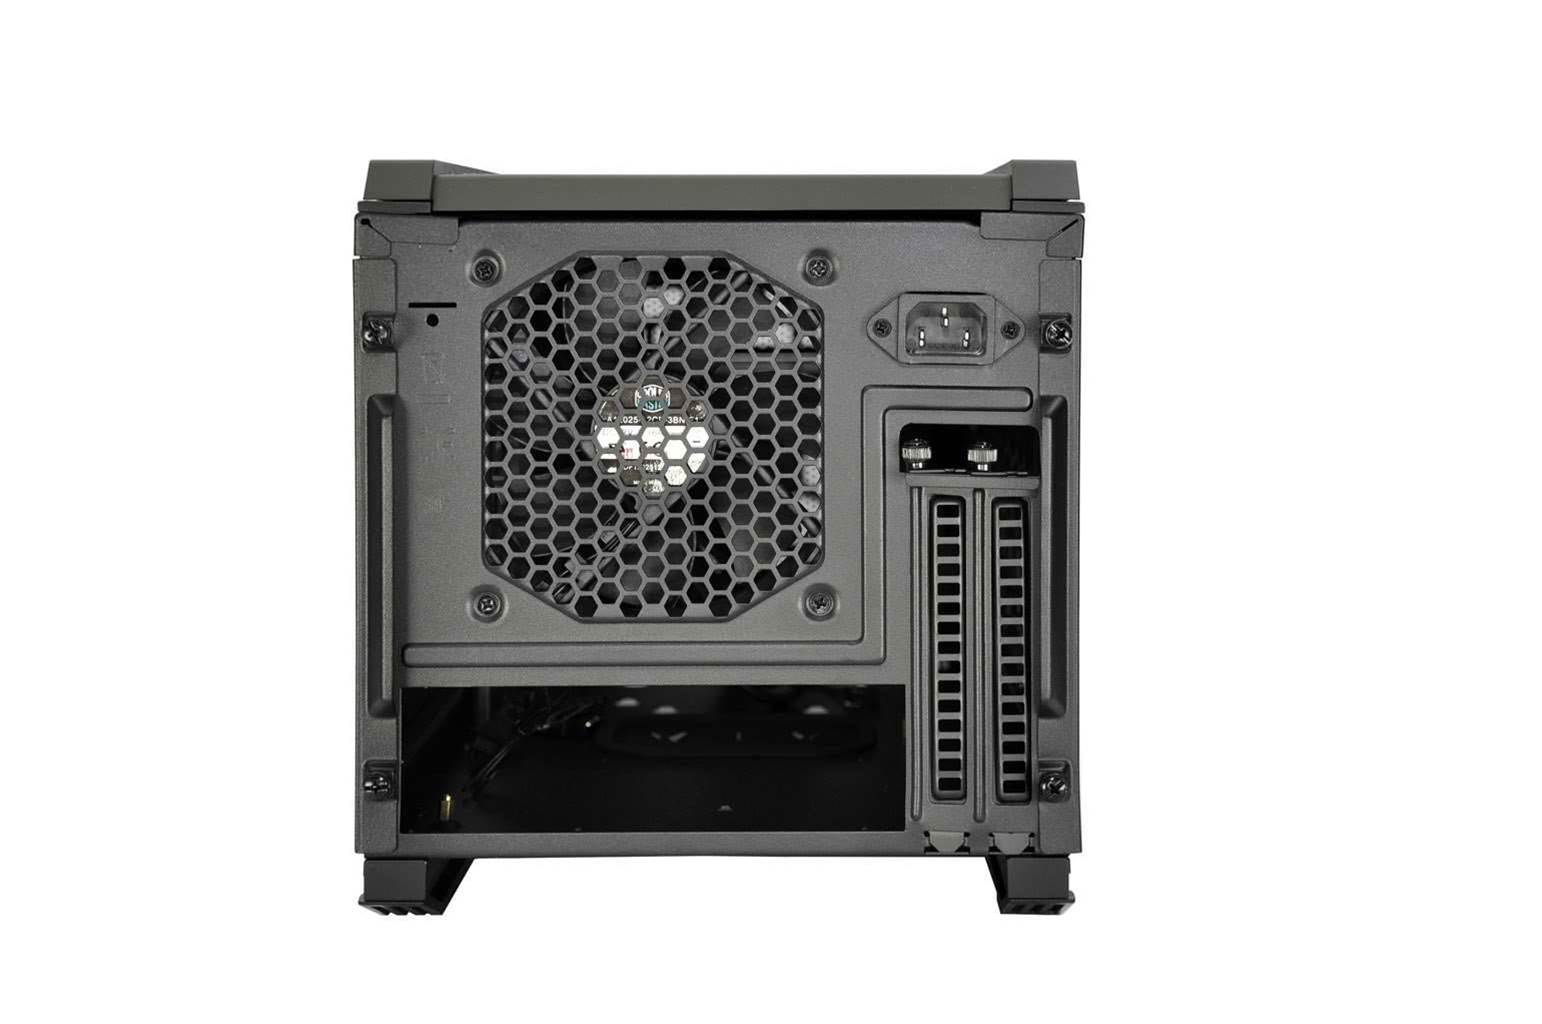 Gallery: Cooler Master HAF Stacker